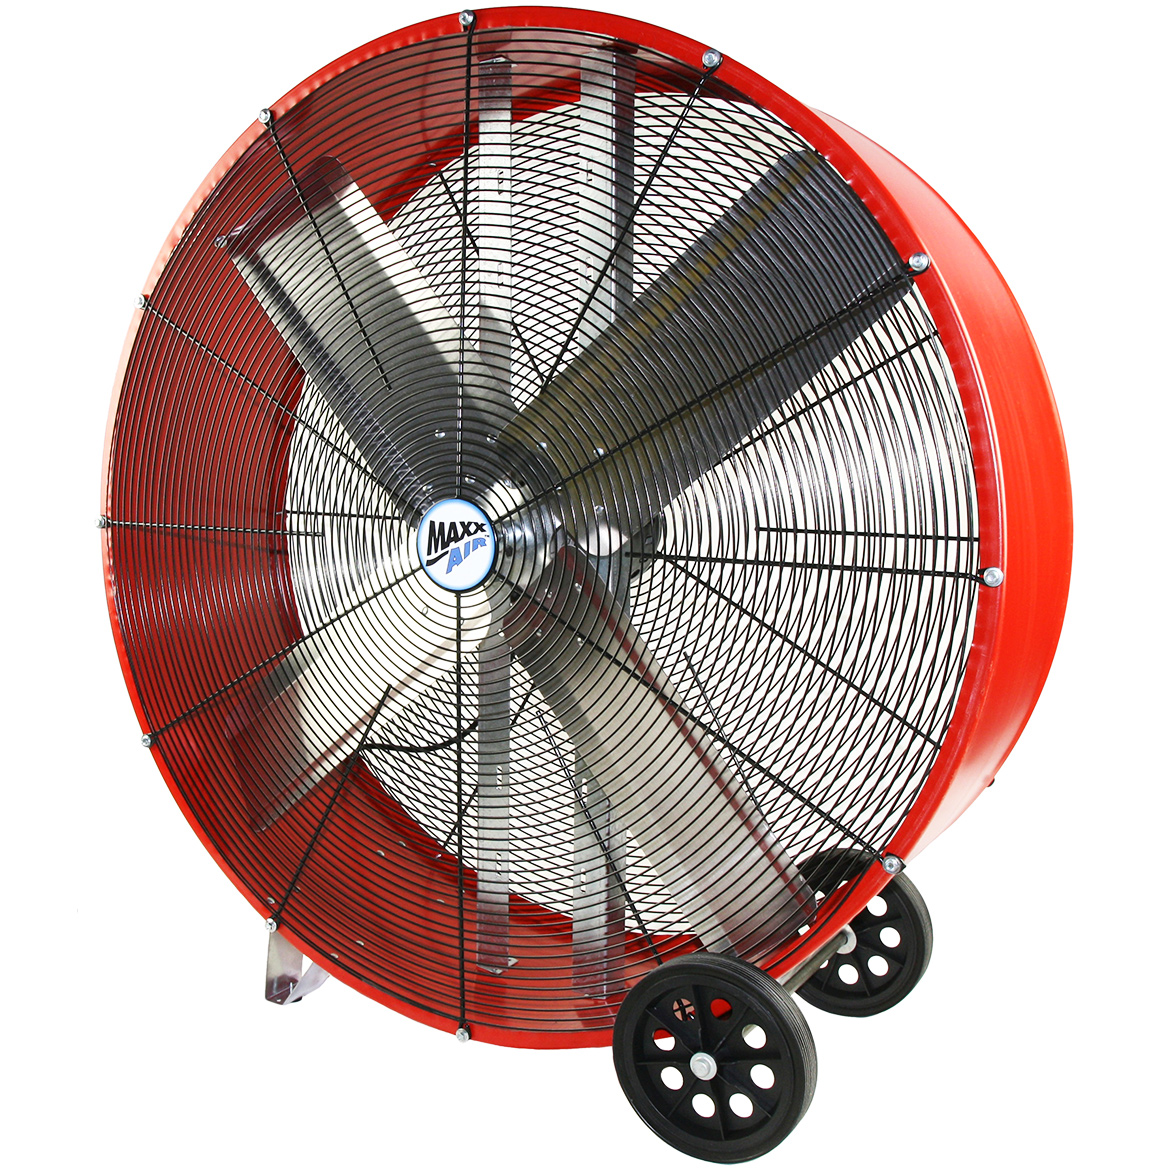 "MaxxAir 30"" Direct Drive Barrel Fan by MaxxAir"